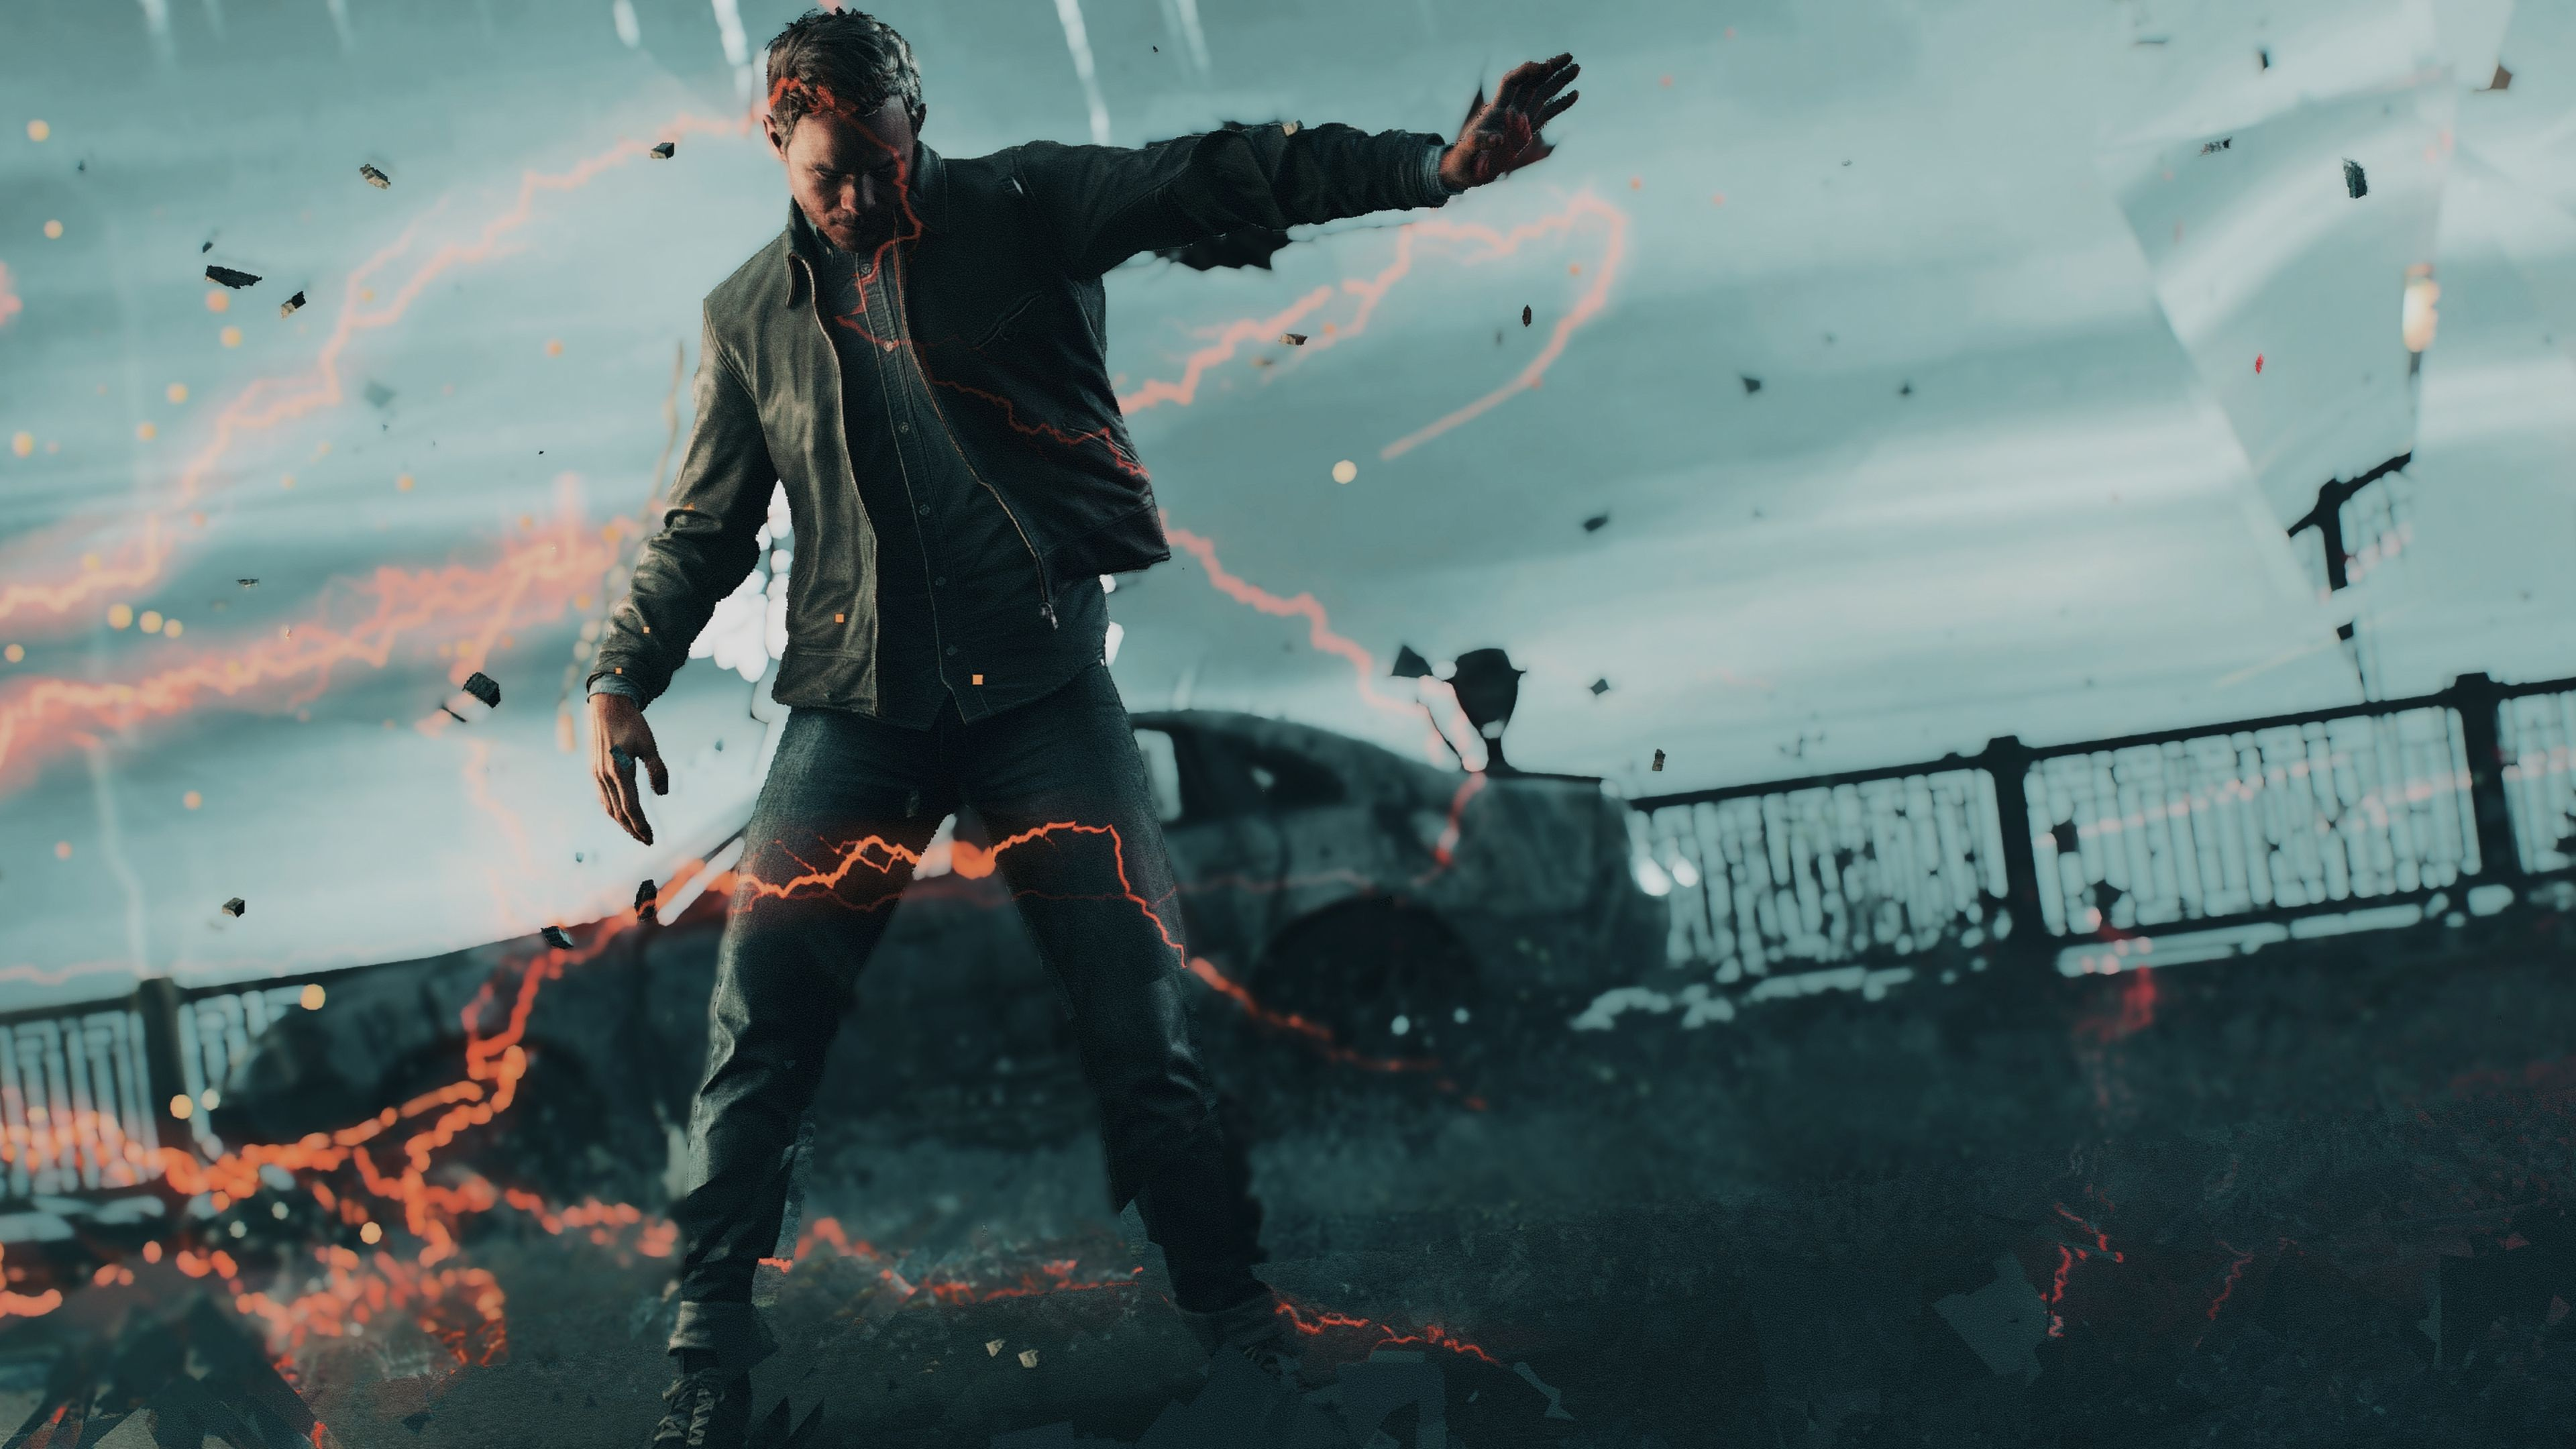 4k Quantum Break Xbox Games Wallpapers Quantum Break Wallpapers Pc Games Wallpapers Hd Wallpapers Games In 2020 Pc Games Wallpapers Quantum Break Gaming Wallpapers